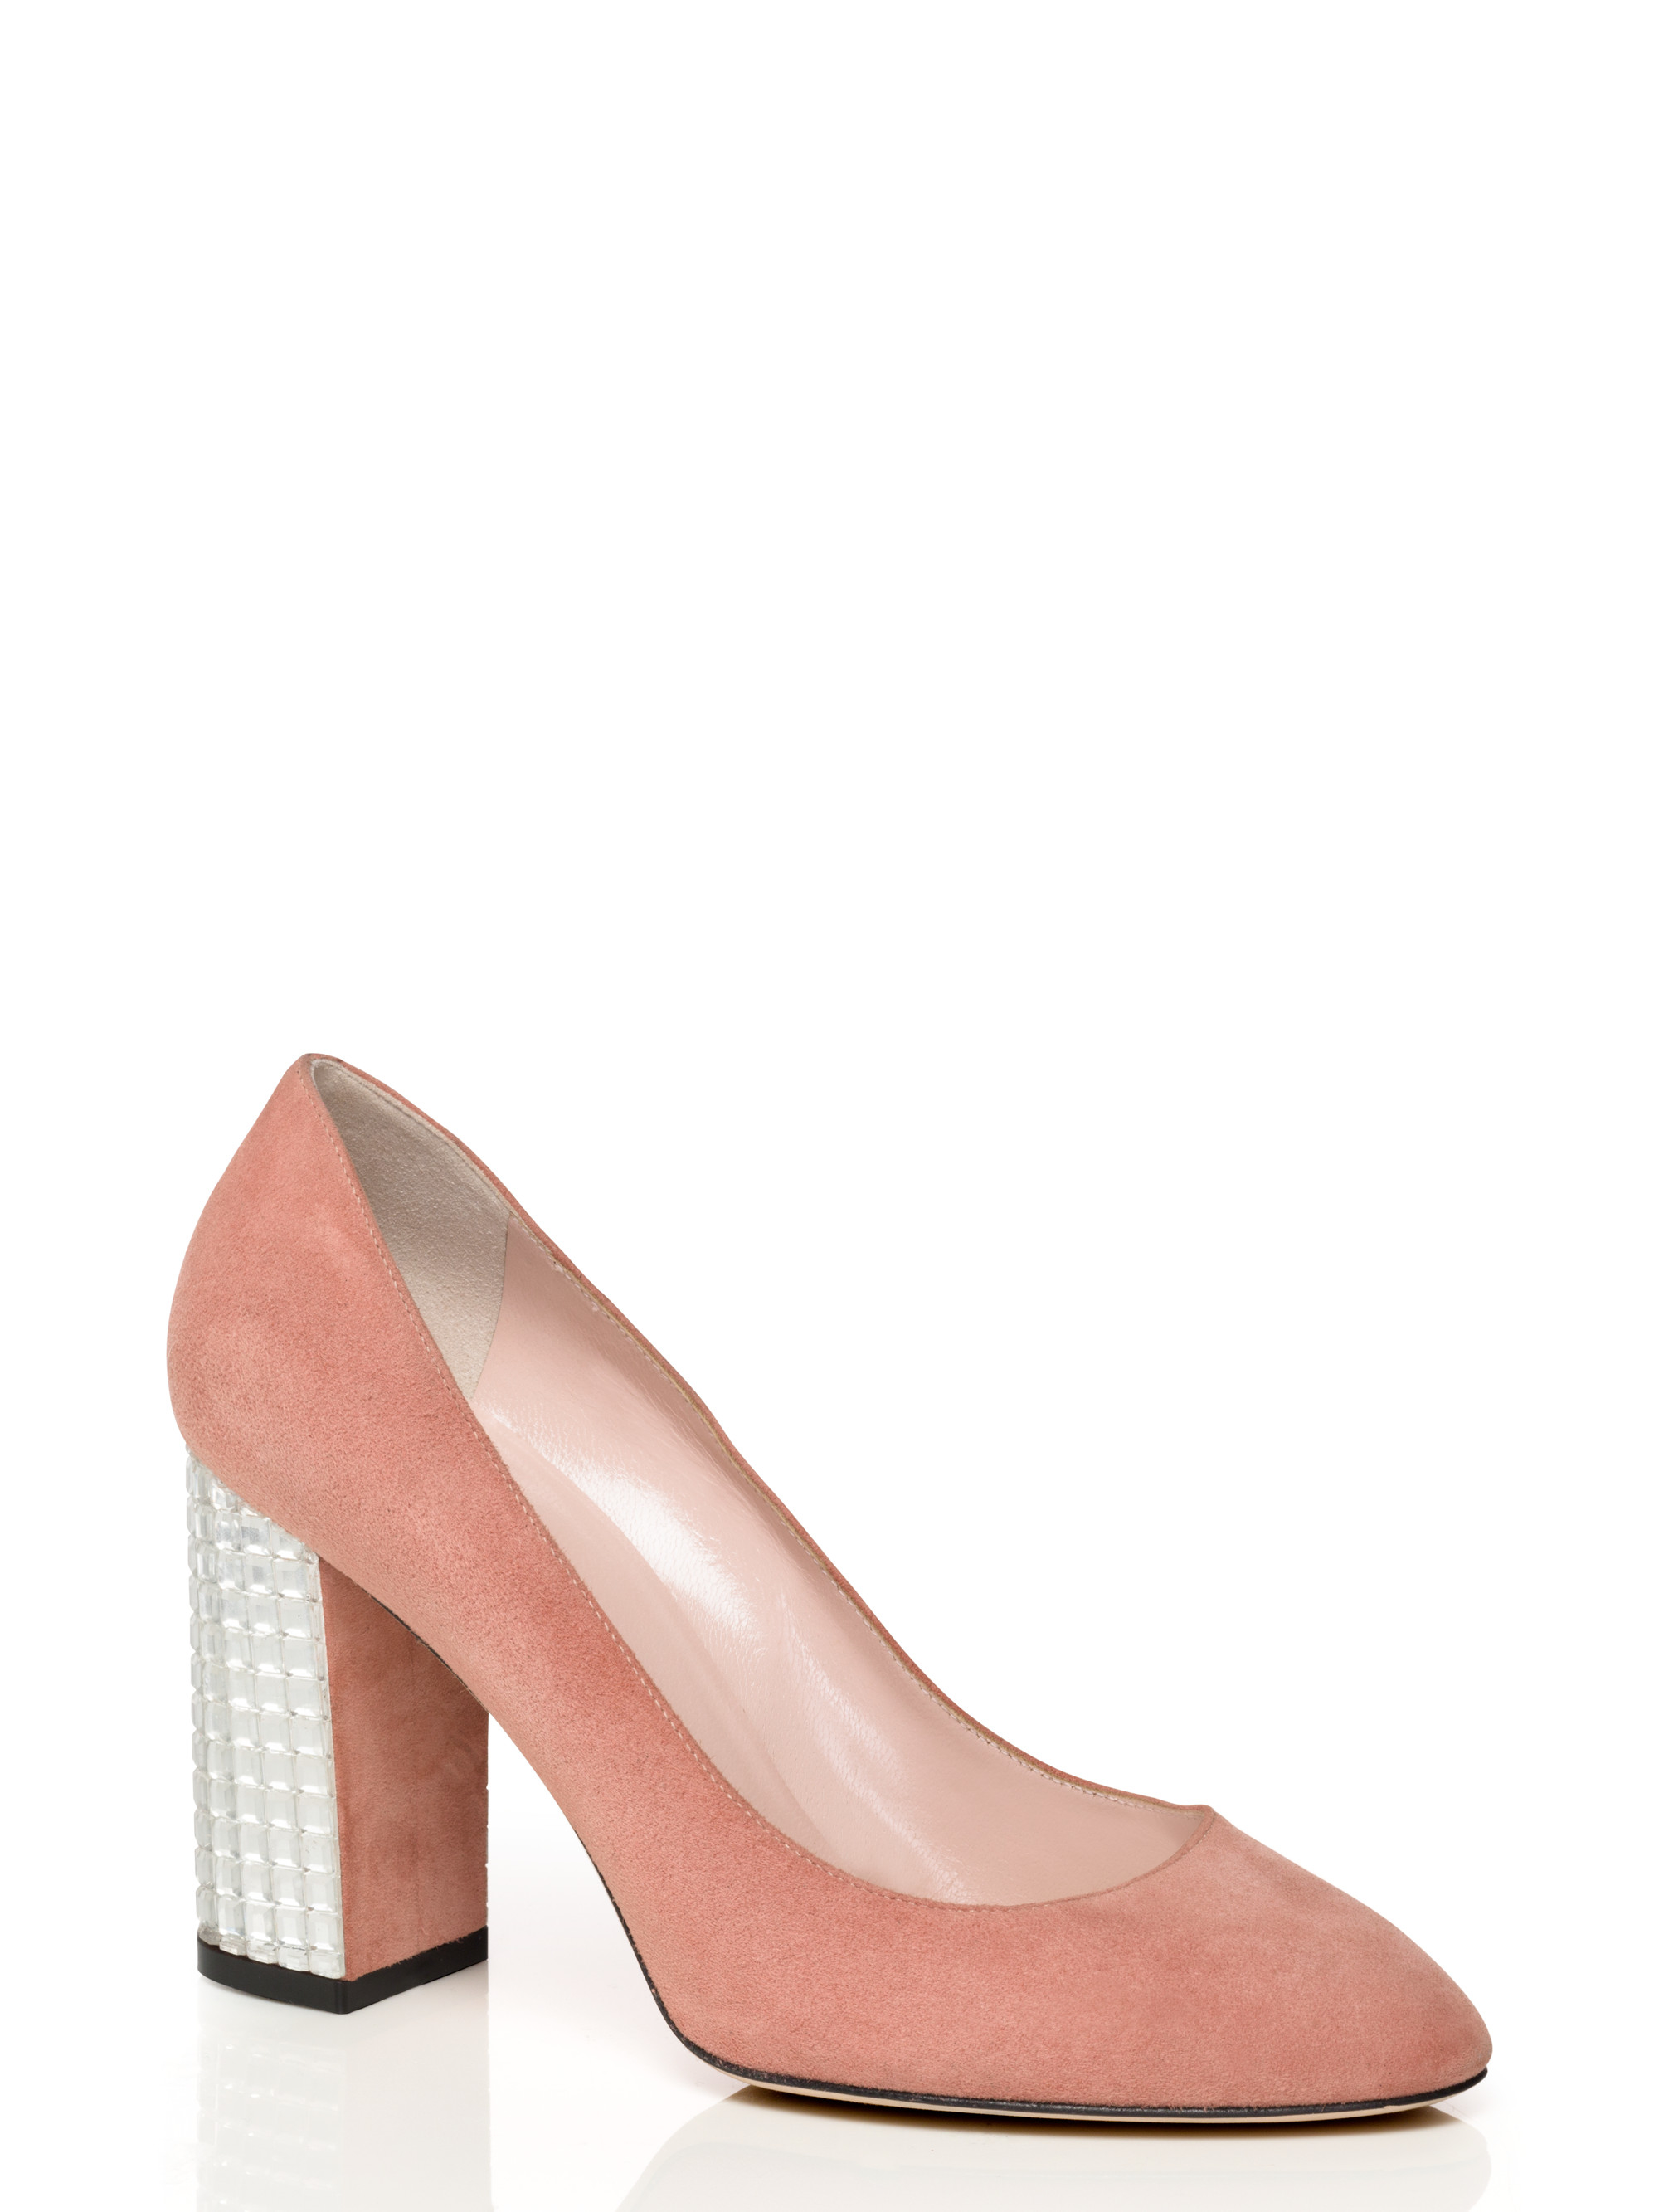 outlet high quality Kate Spade New York Suede Round-Toe Pumps for cheap free shipping eastbay discount 2014 new TJEQqz3UNE